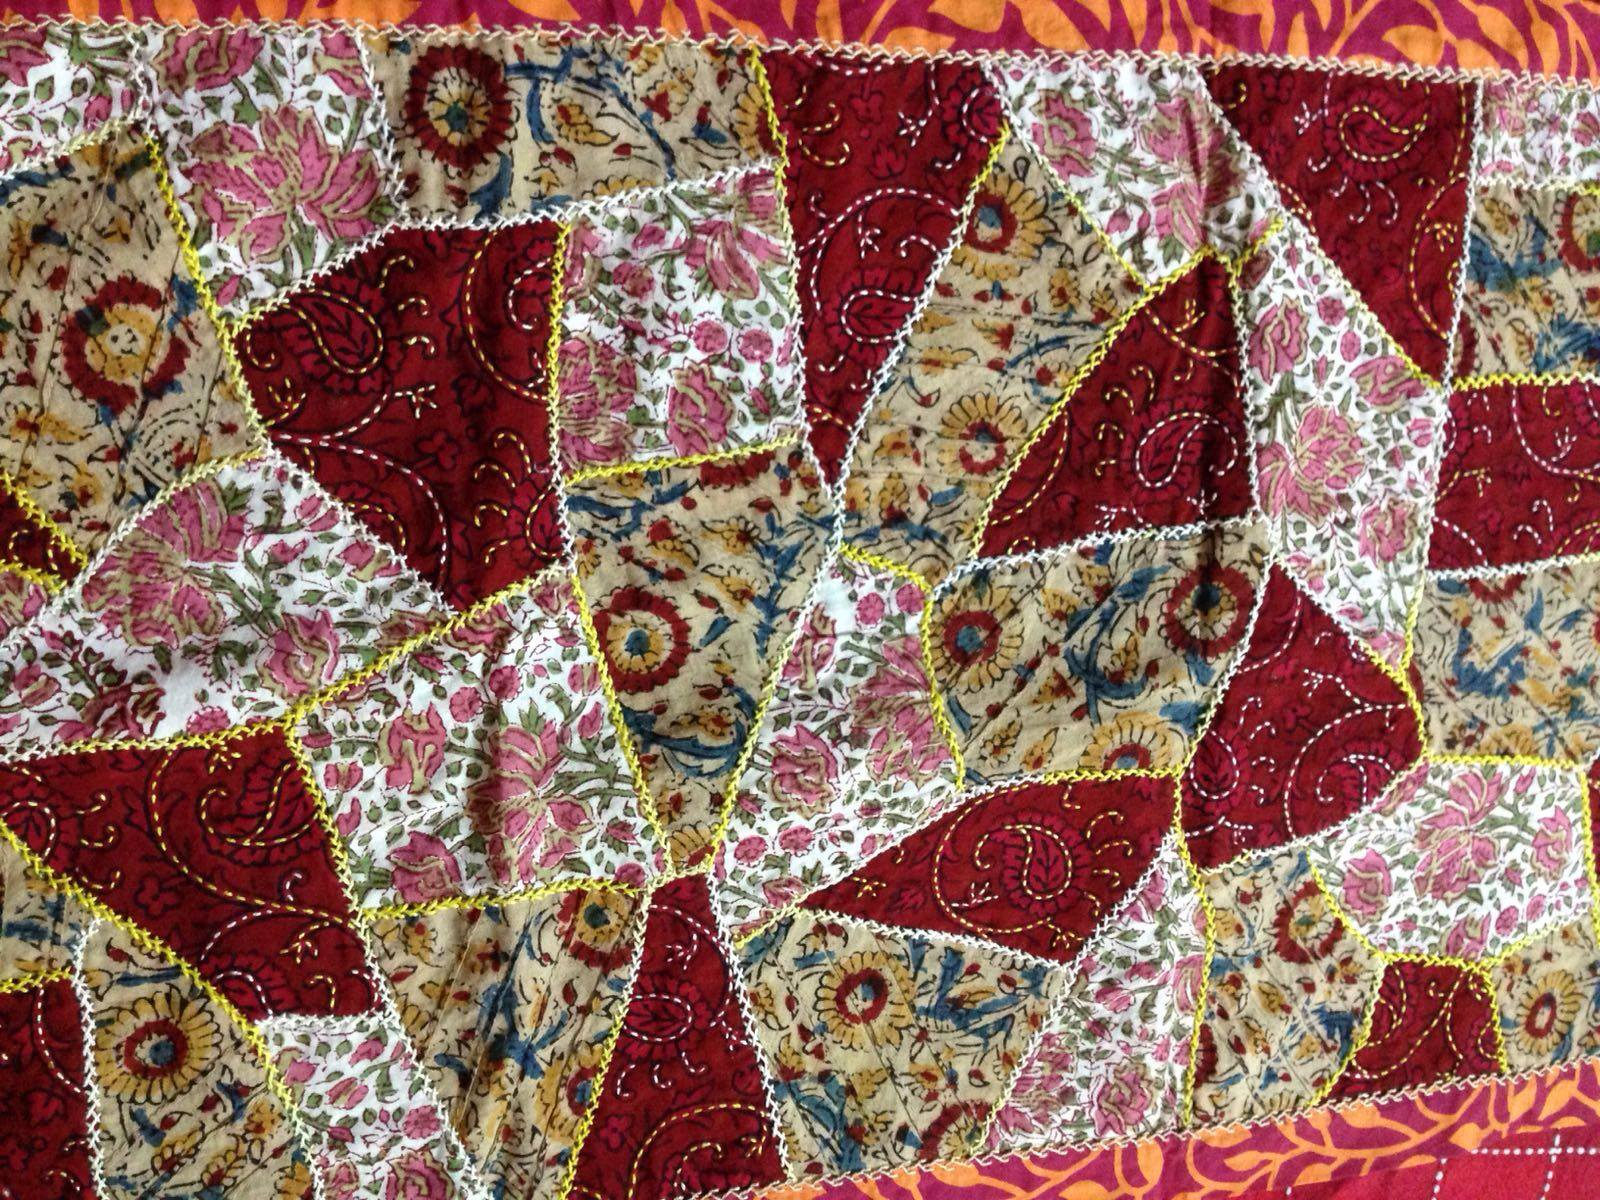 Crazy quilting, quilting by hand techniques